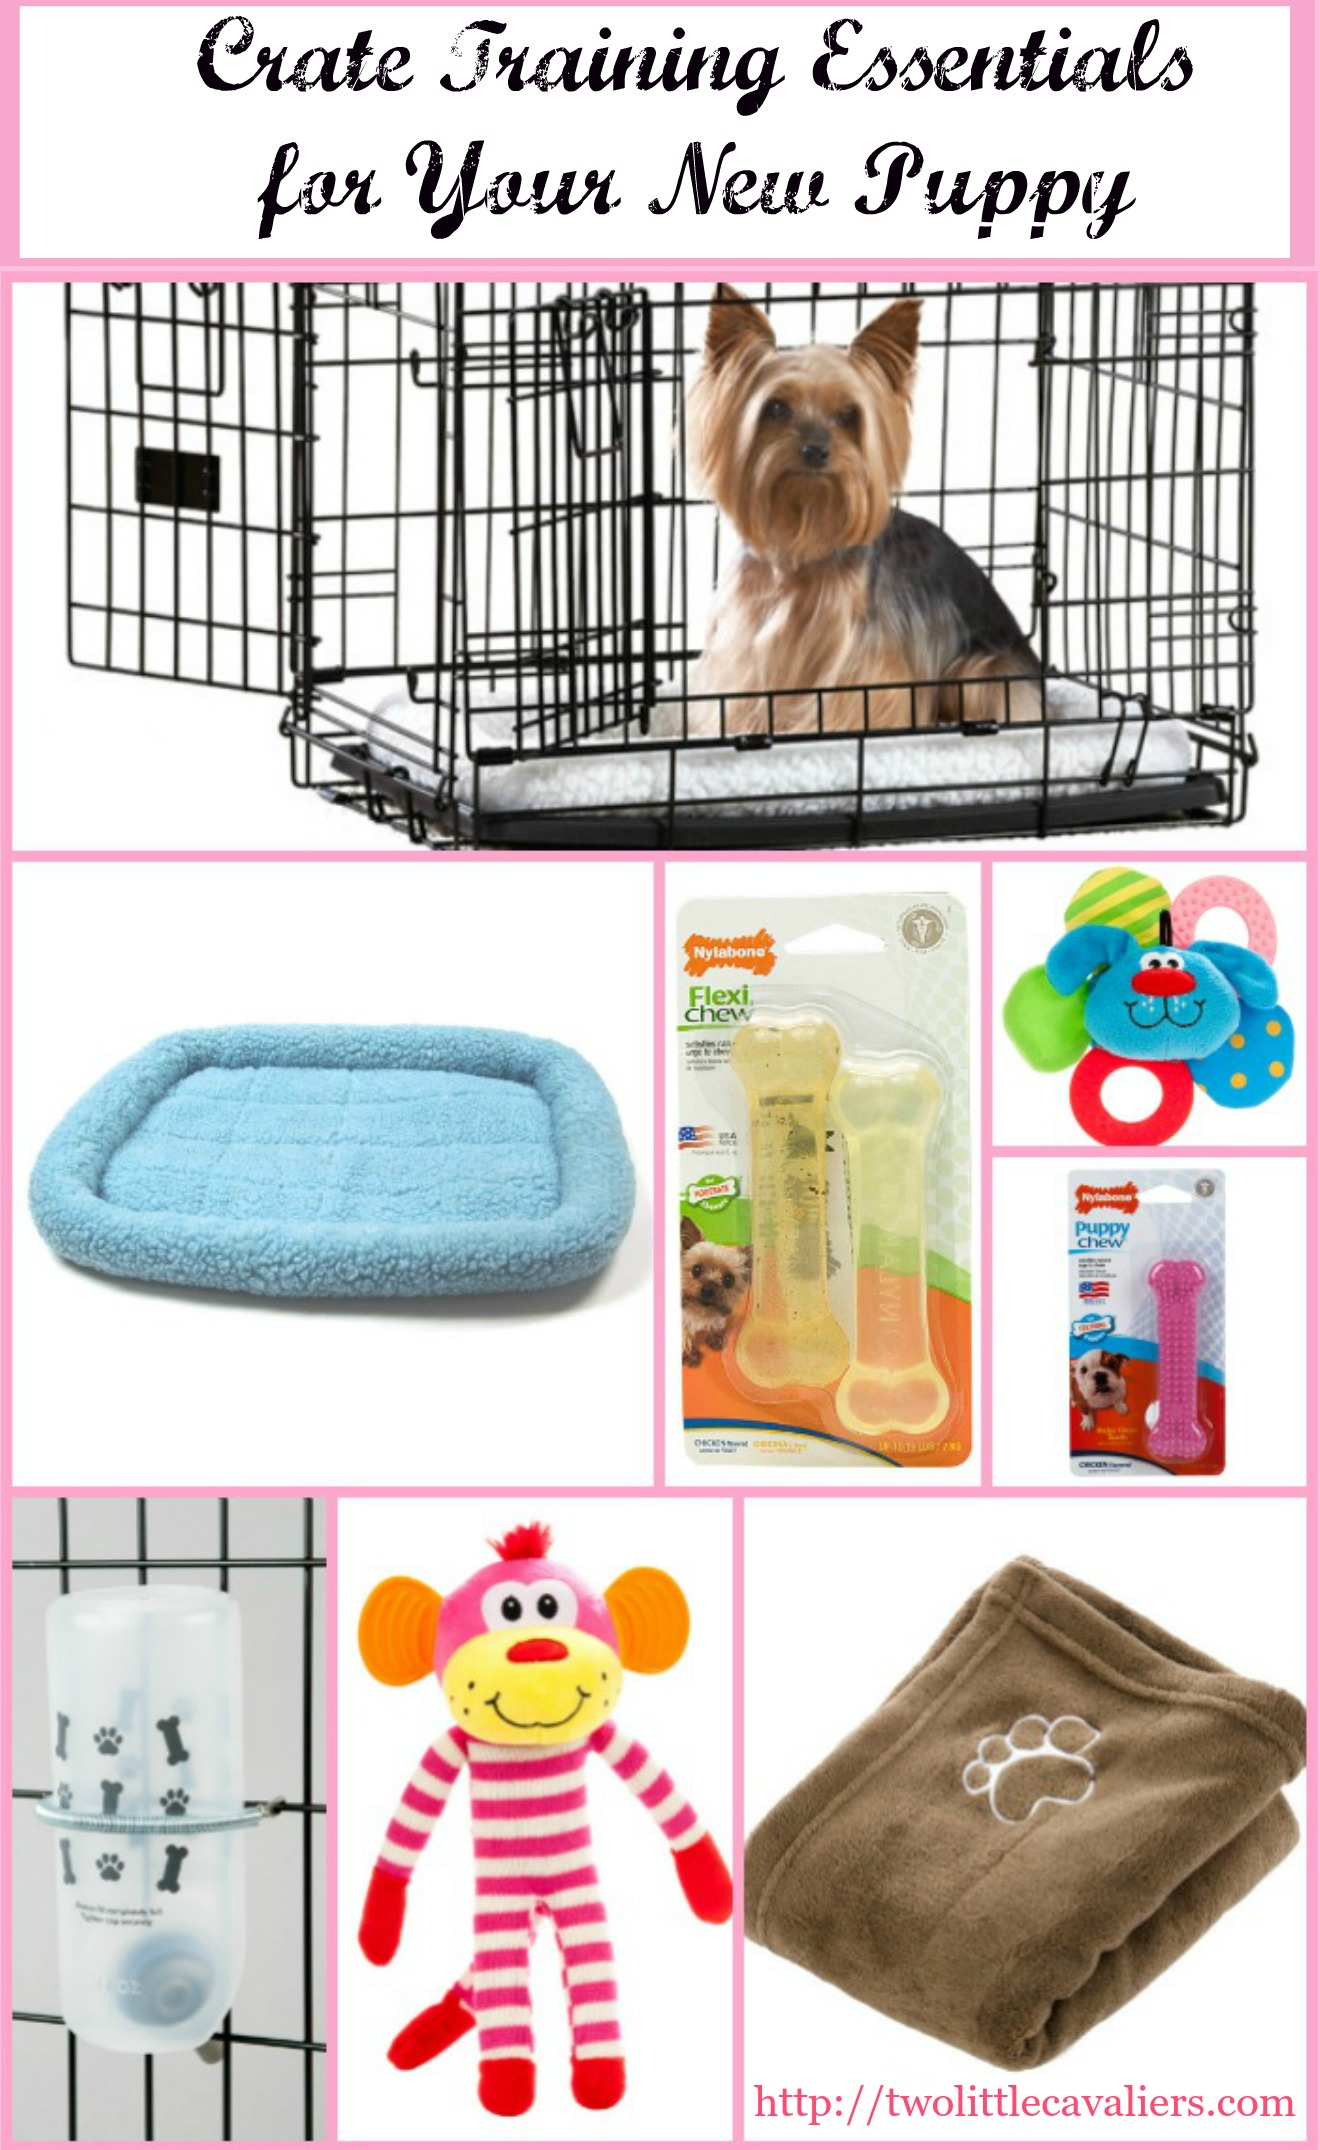 crate training essentials for your new puppy #cratehappypets